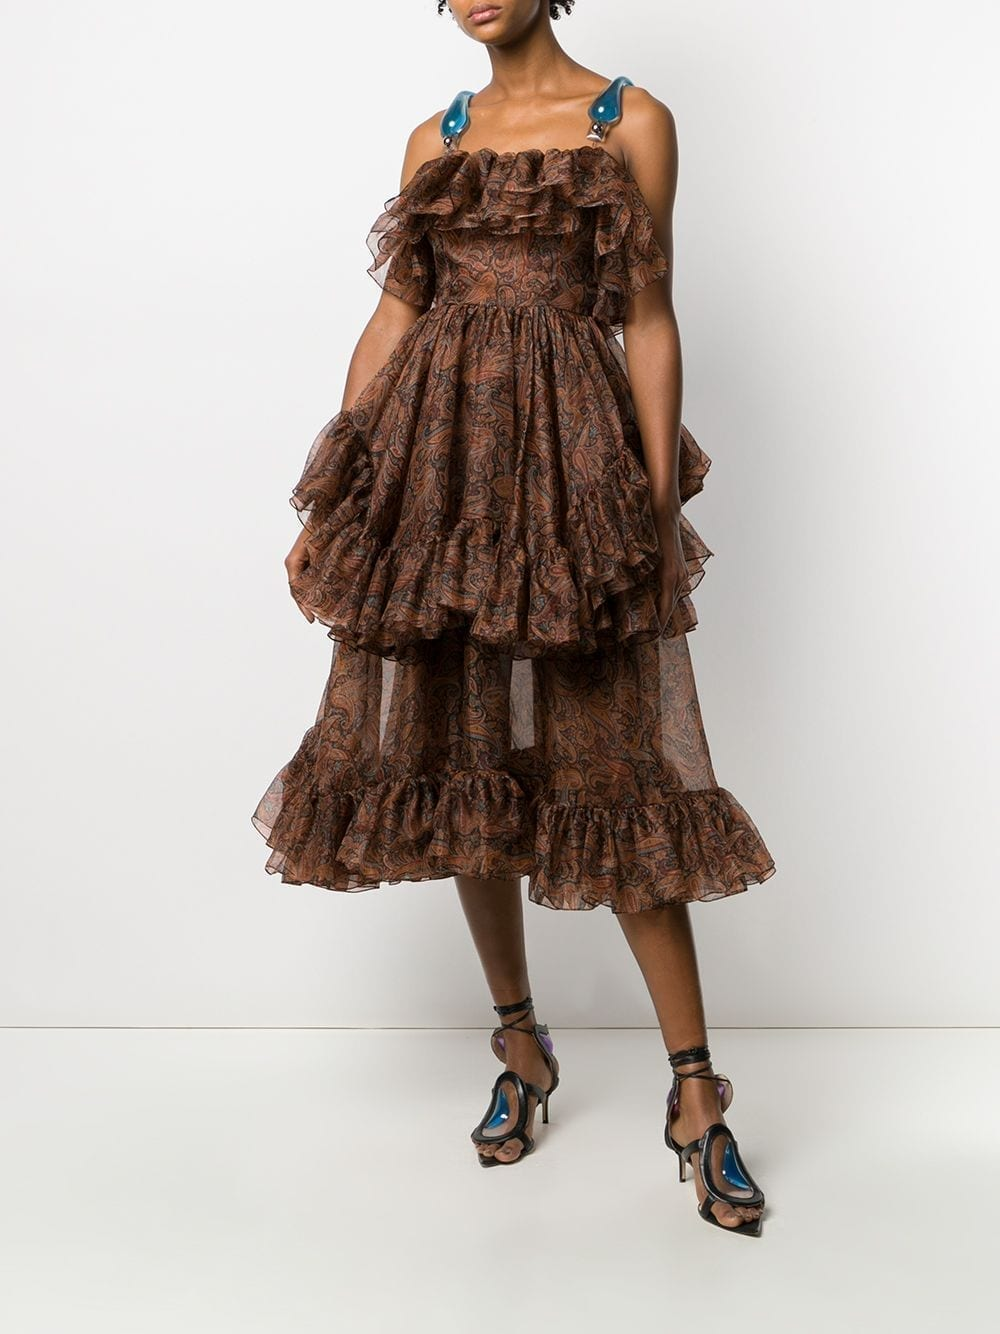 CHRISTOPHER KANE Paisley Organza Frill Dress